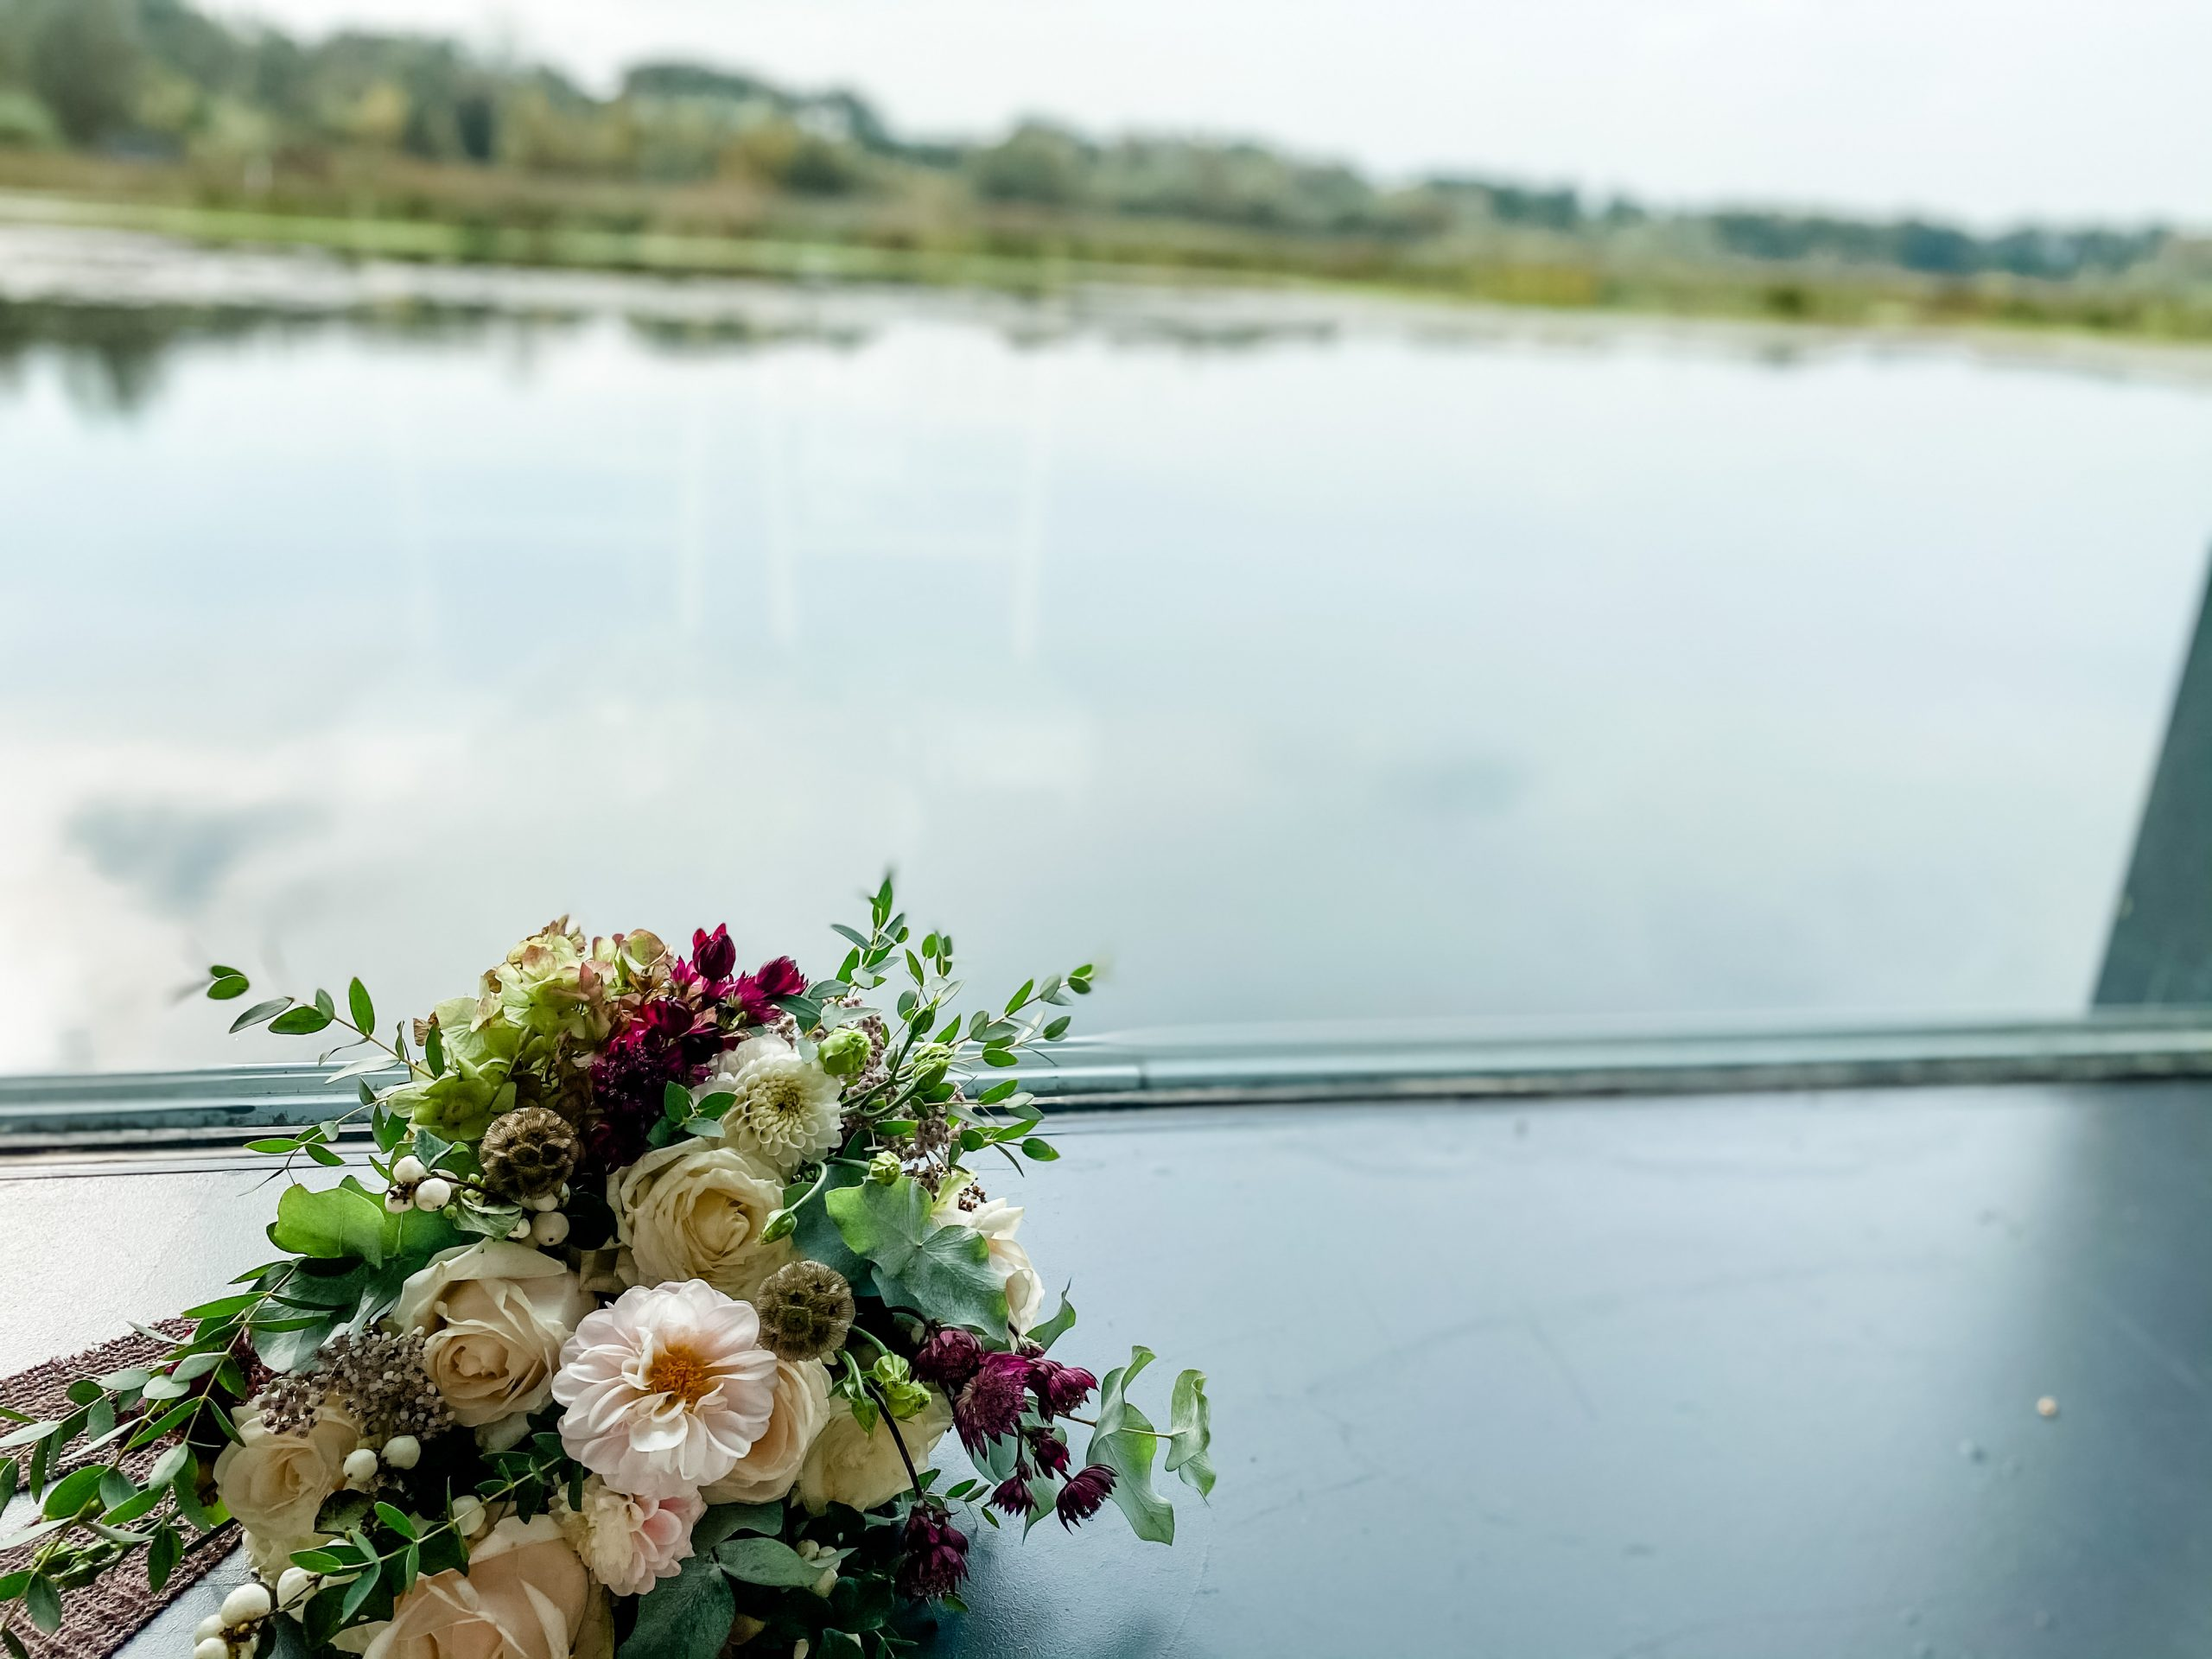 Bridal bouquet overlooking the water at brockholes